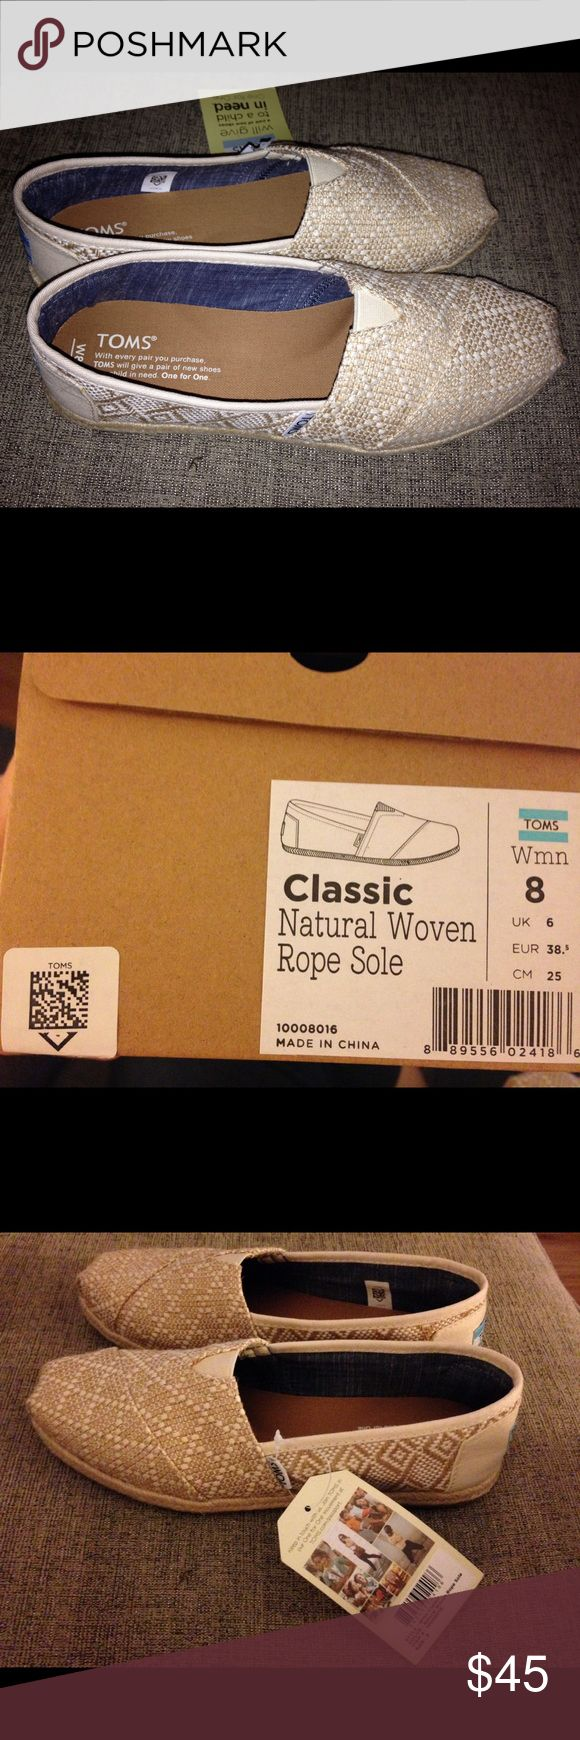 New!! TOMS classic natural woven rope sole sz 8 Beige and white with rope sole. New, never worn!! TOMS Shoes Flats & Loafers